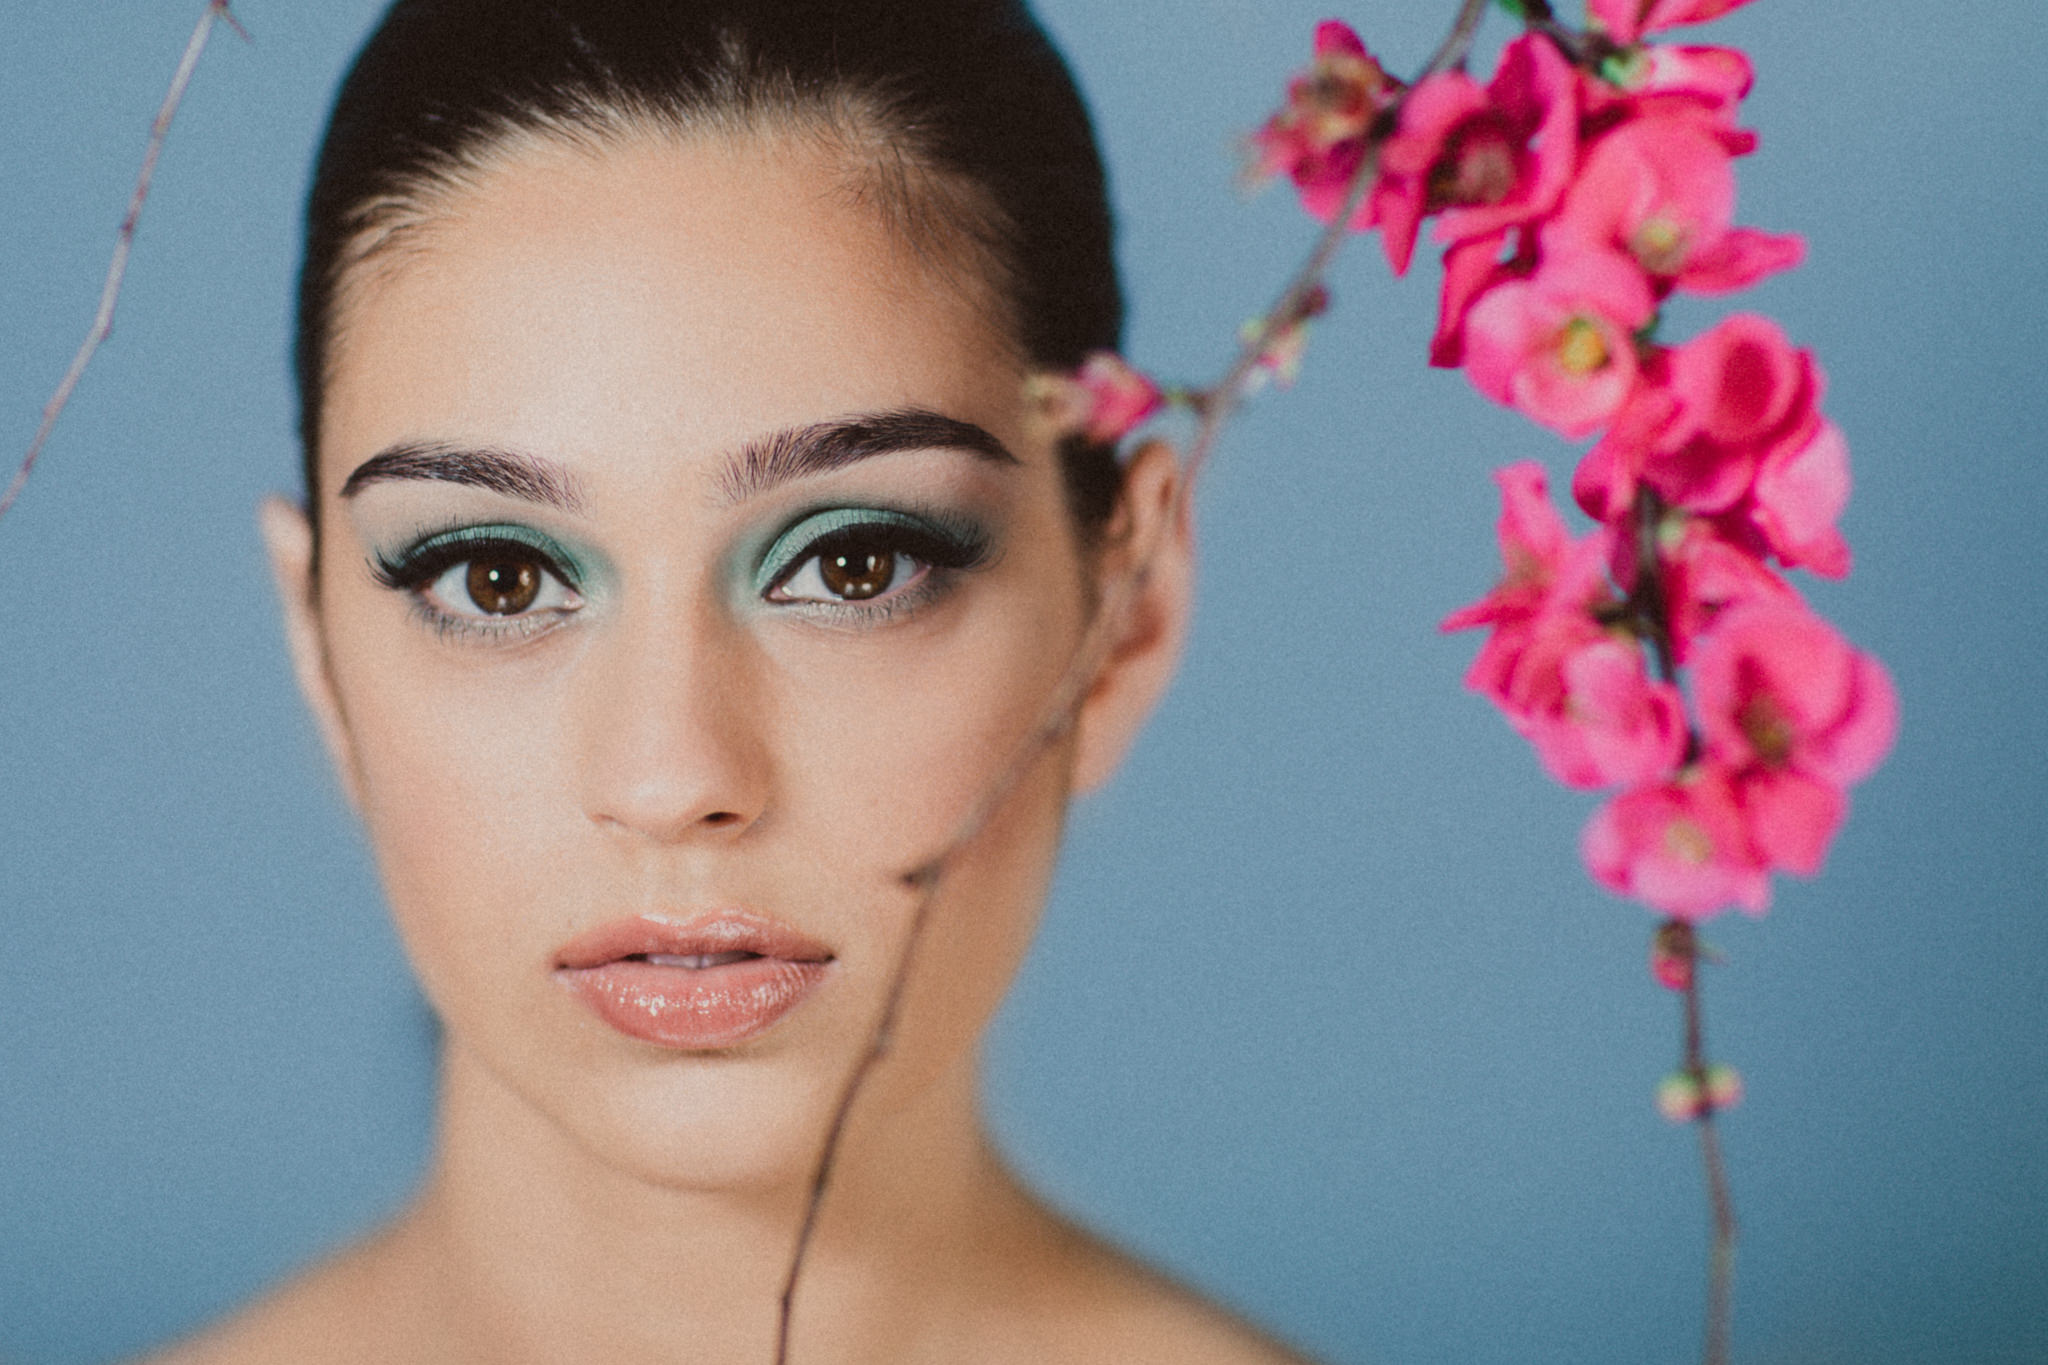 the face and flowers - beauty on blue backdrop pastels and flowers